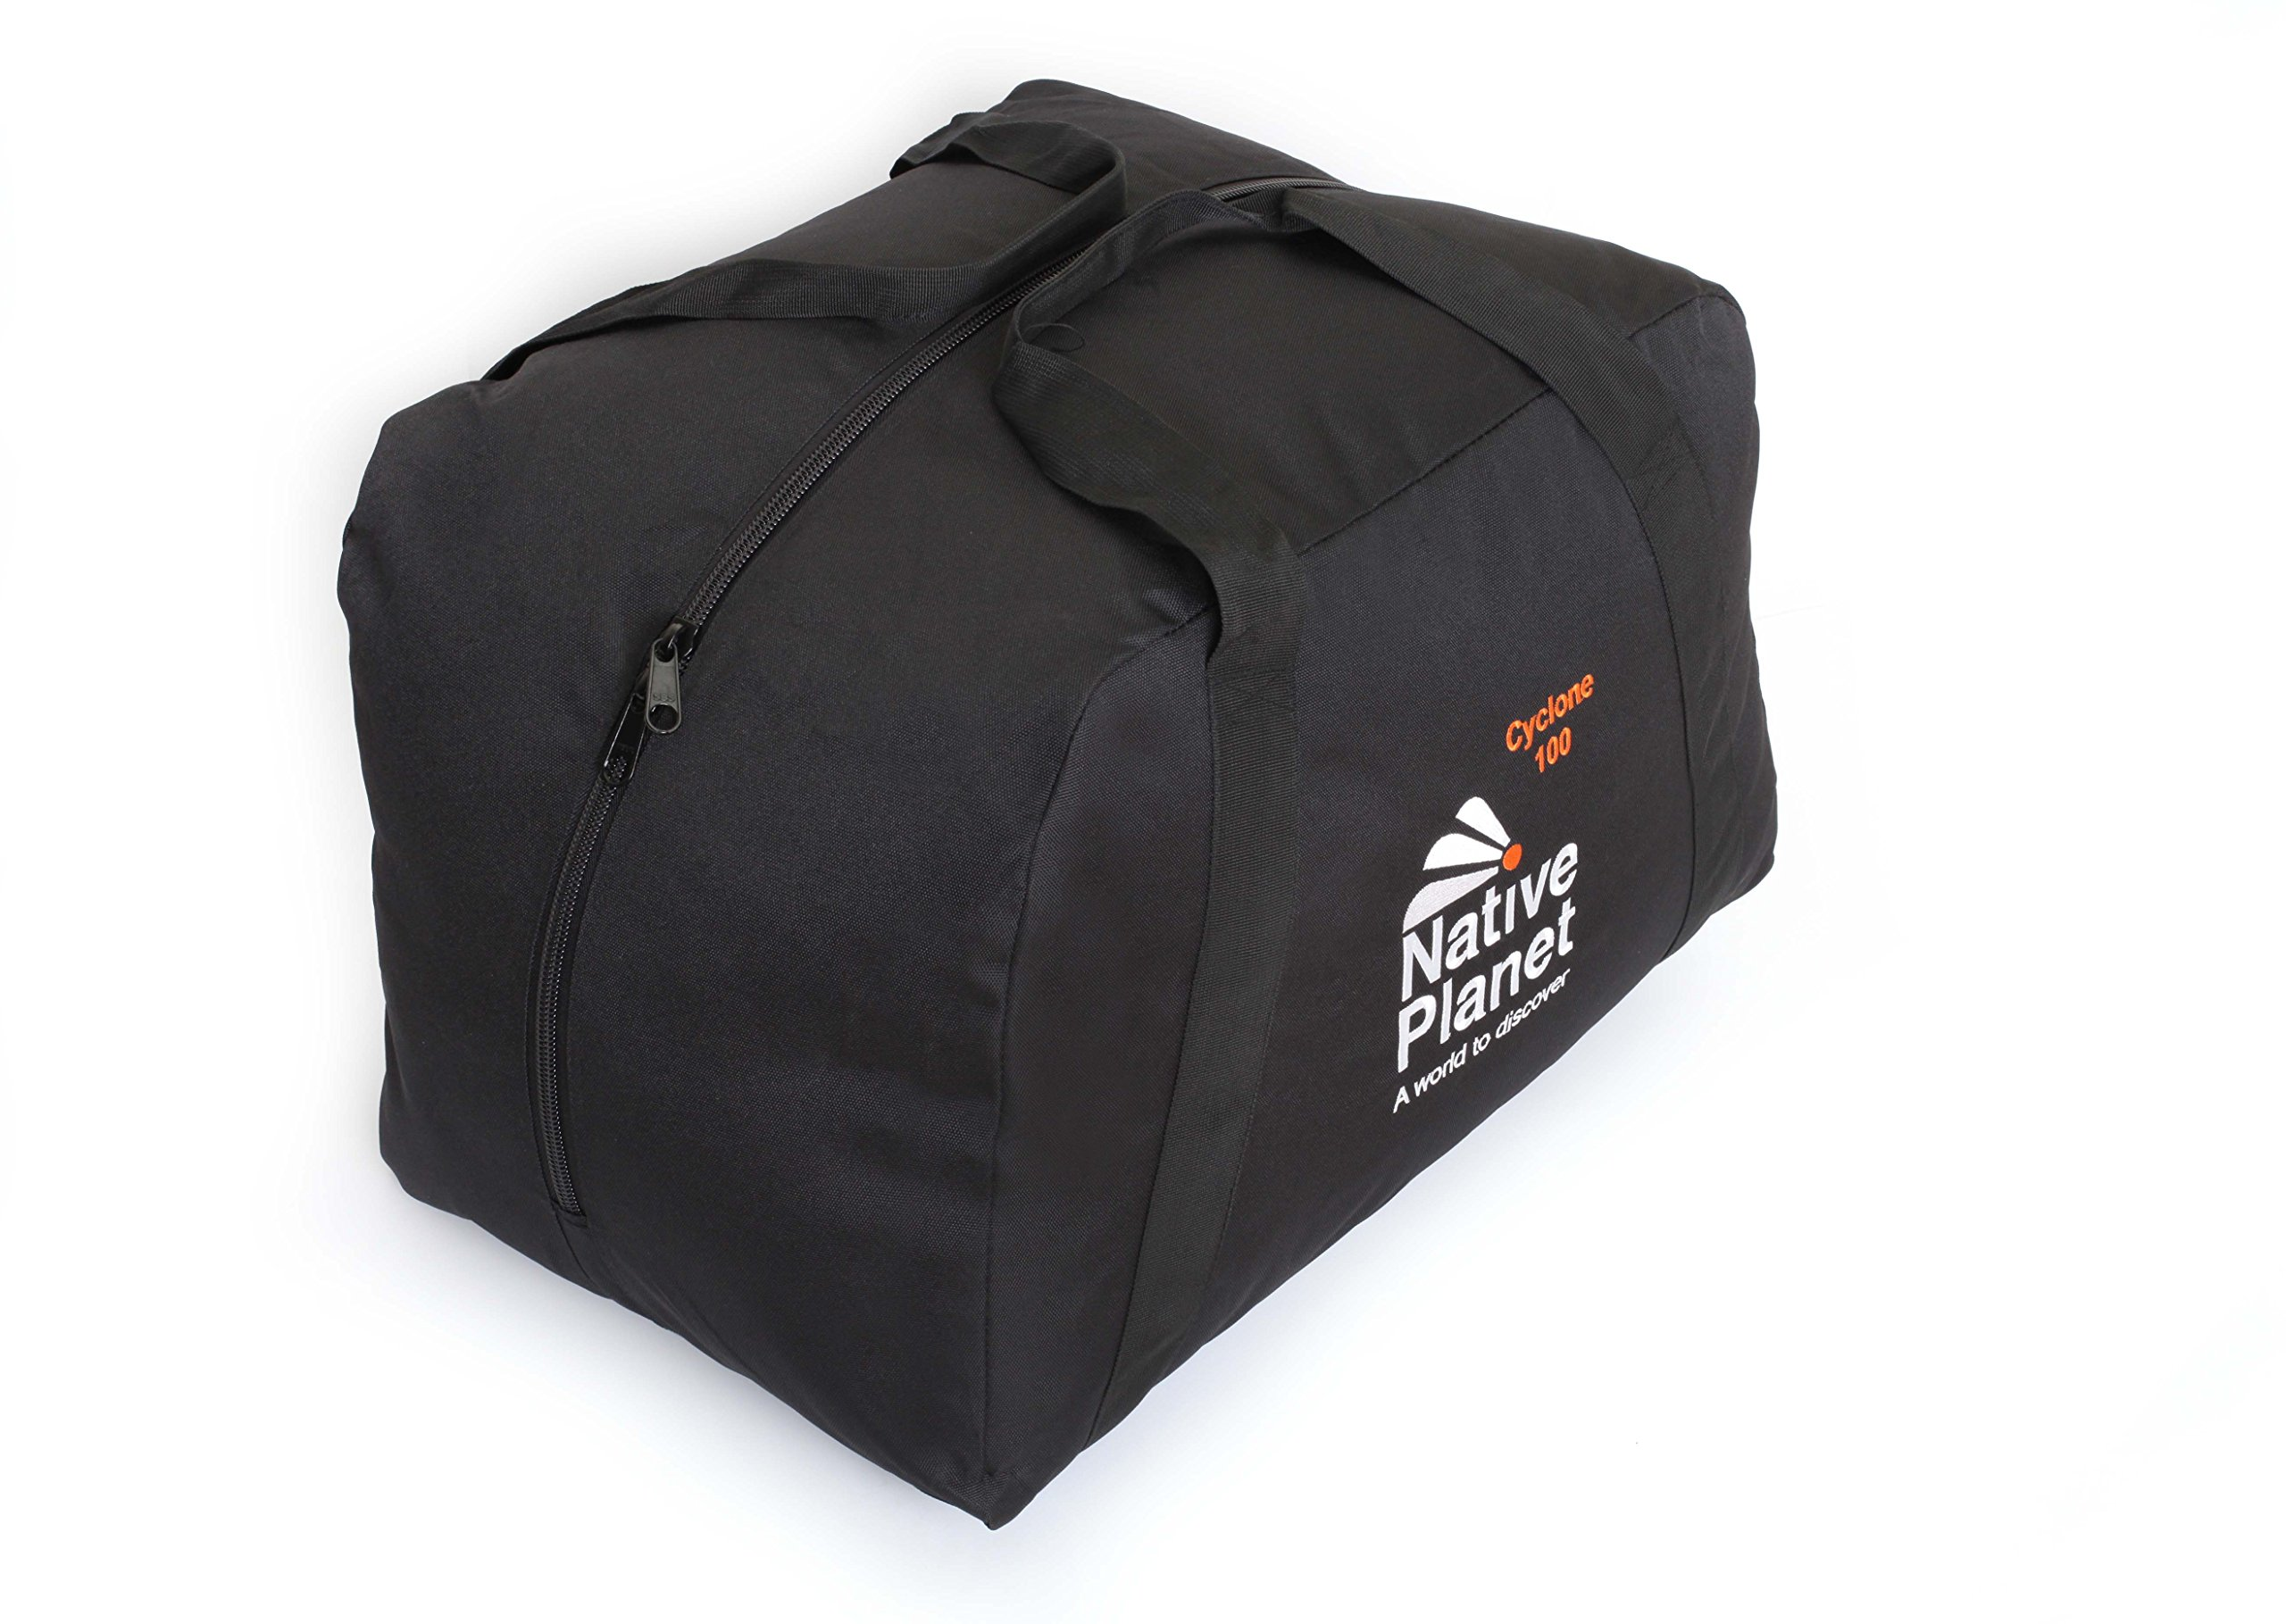 Native Planet Foldable Cyclone Travel Duffle Bag Highly Durable - Black-100L by Native Planet